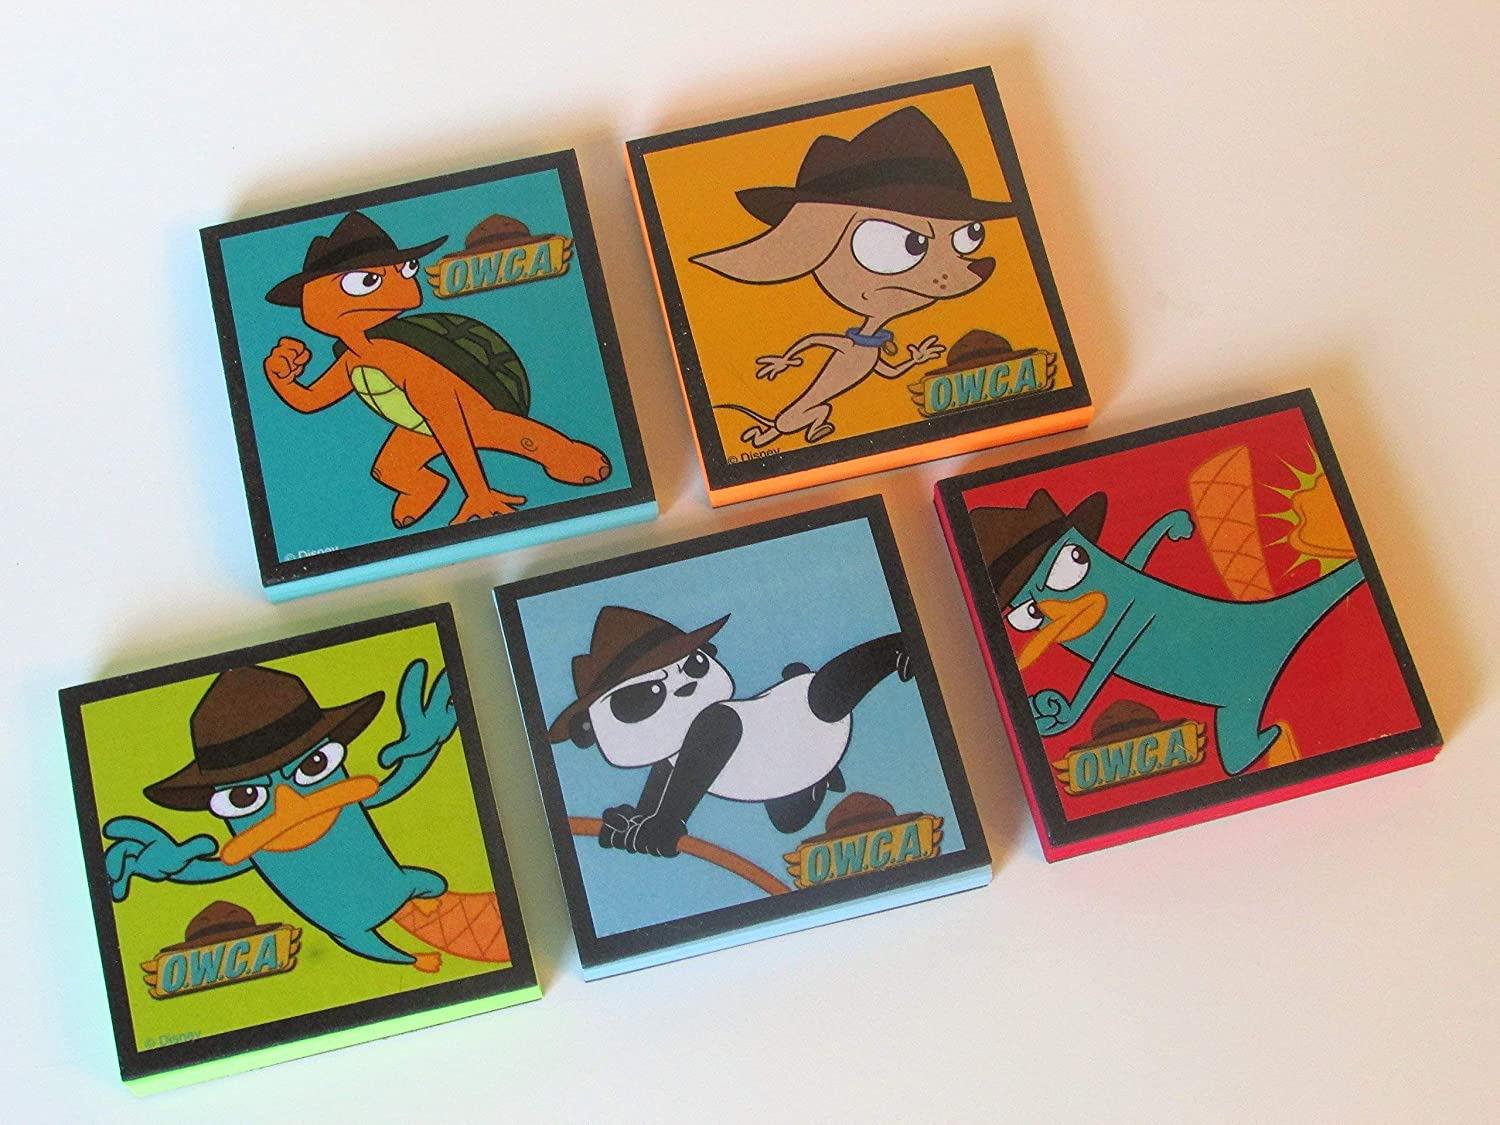 Perry the Platypus Birthday Party Favors set #3 Phineas and Ferb Perry the Platypus OWCA Note Pads Set of 5 - Excellent Party Favors